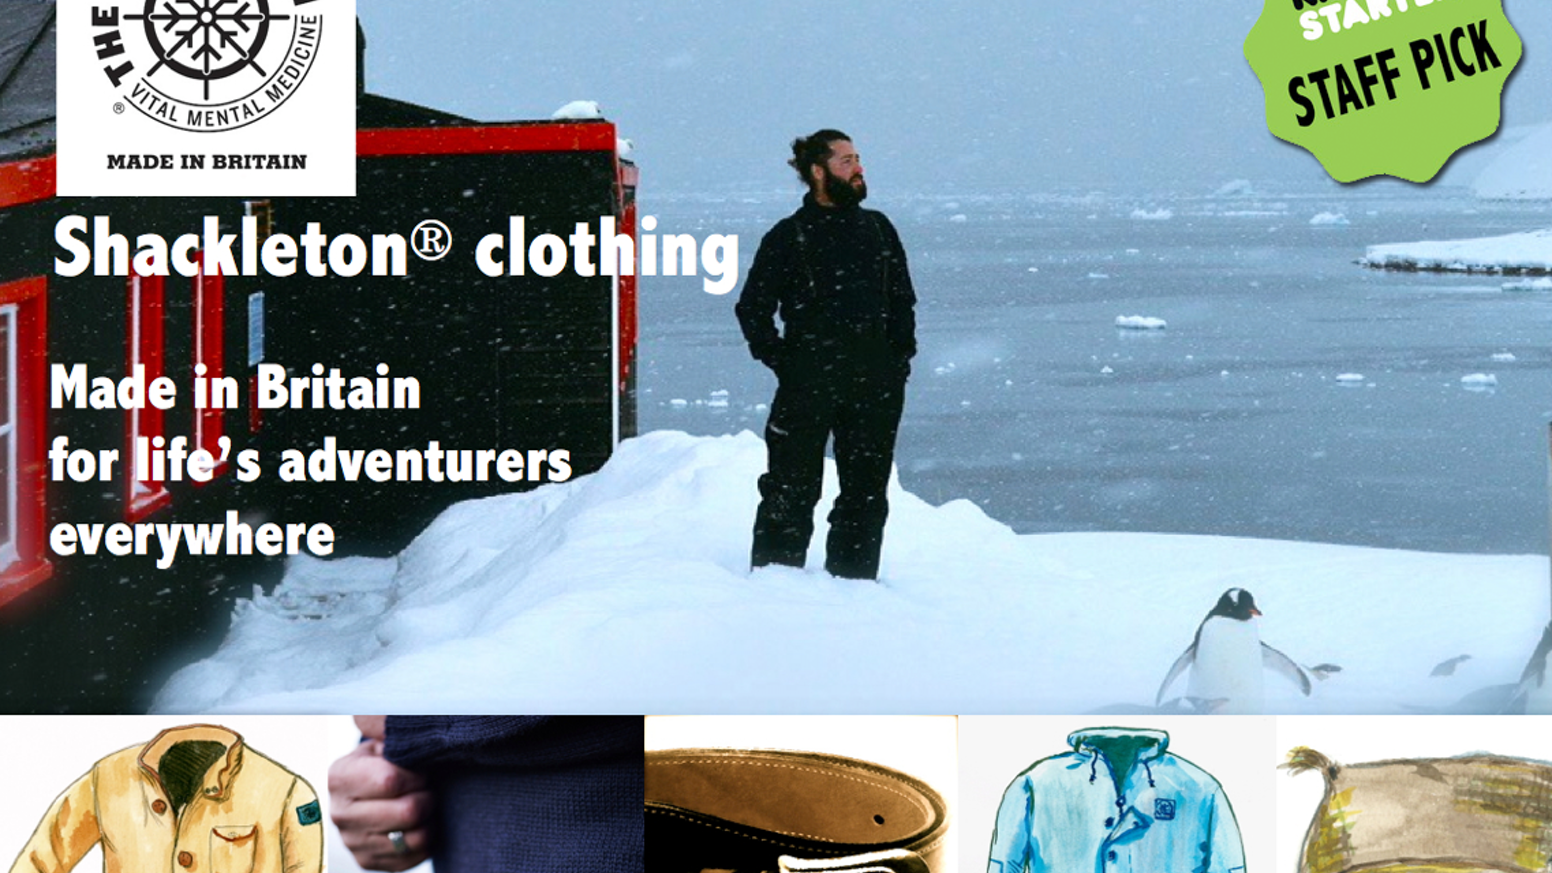 c4808d9bb36 Premium British-made clothing for every day of life s adventure  designed  from photographs of